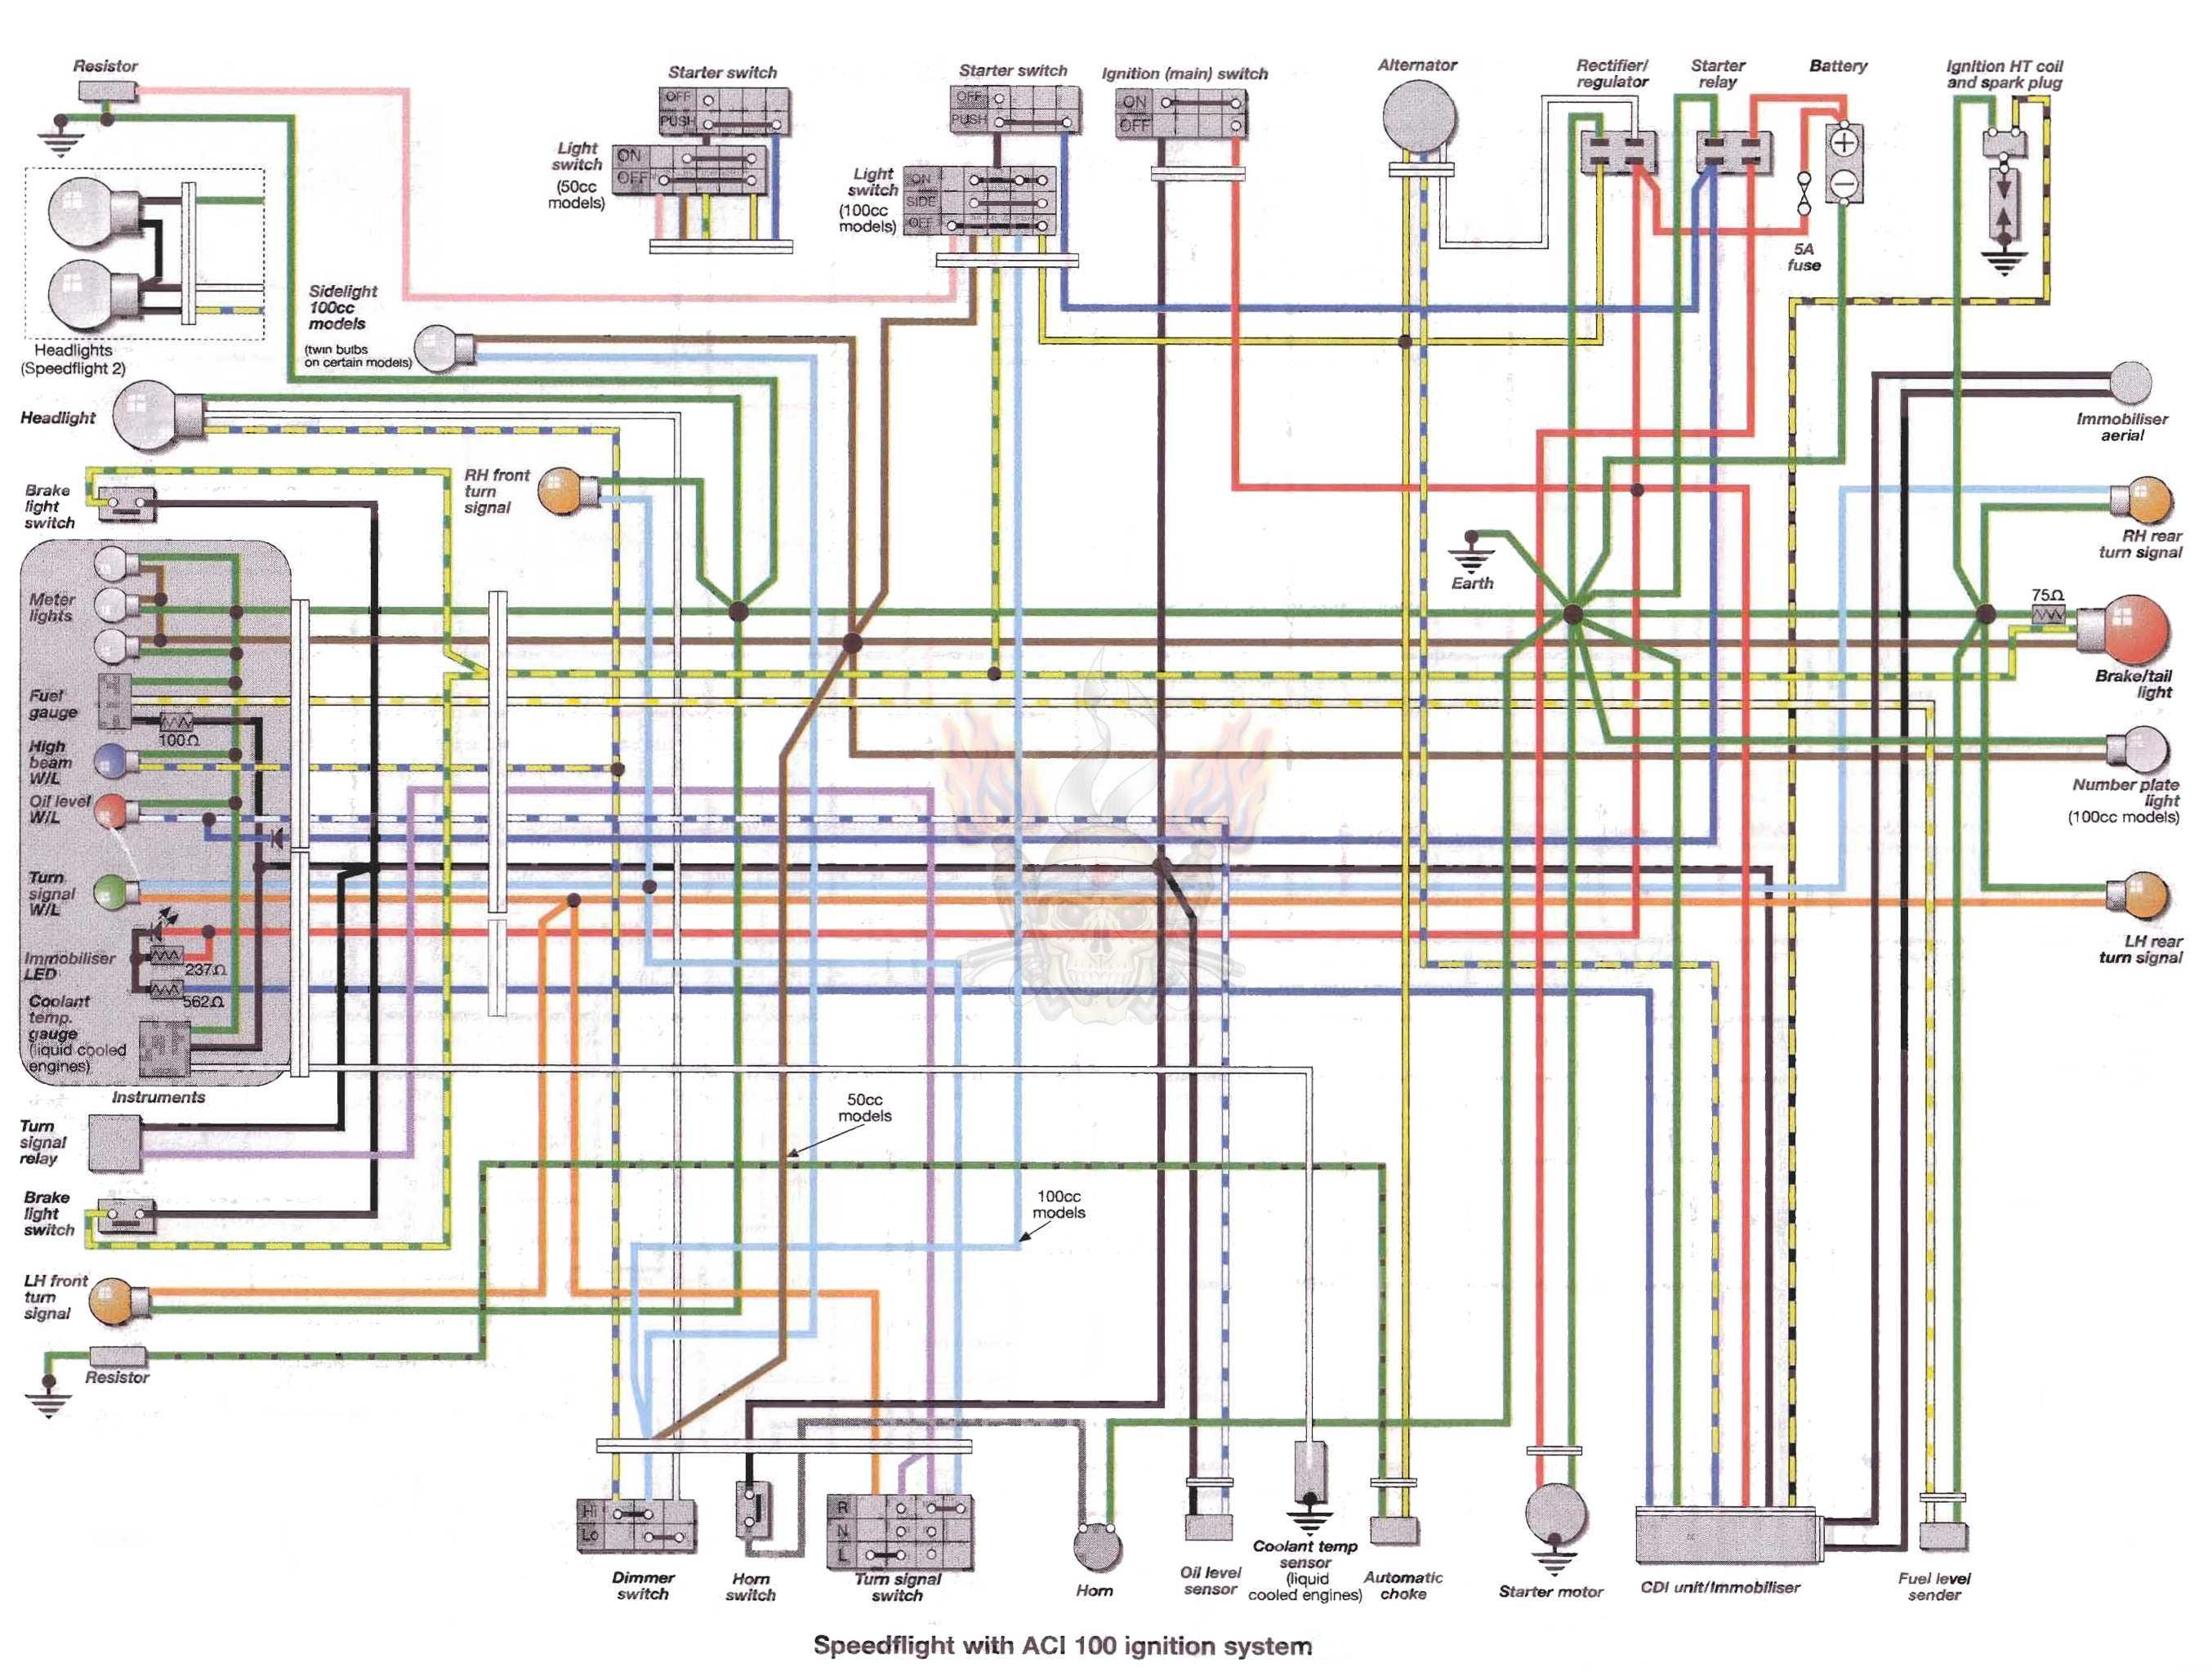 Pleasant Peugeot Wiring Diagrams Mopedwiki Basic Electronics Wiring Diagram Wiring Digital Resources Indicompassionincorg